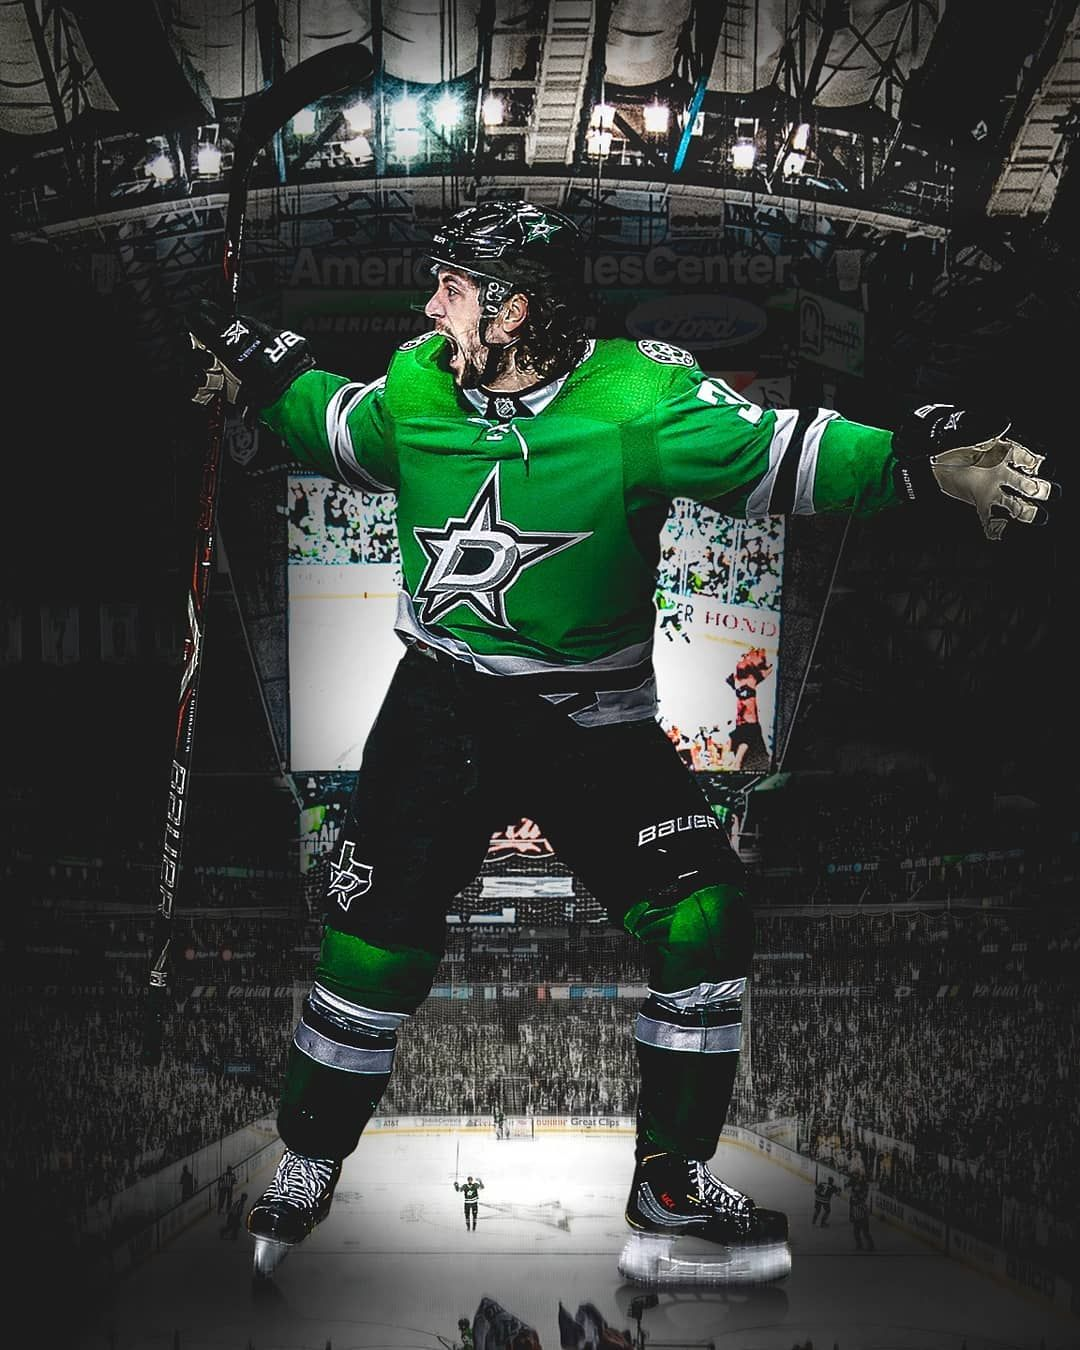 Dallas Stars Check Out Our Story For A Couple Of Fresh Matszuccarello Wallpapers For Your Ph Americanairlinescenter Dalla Dallas Stars Stars Dallas